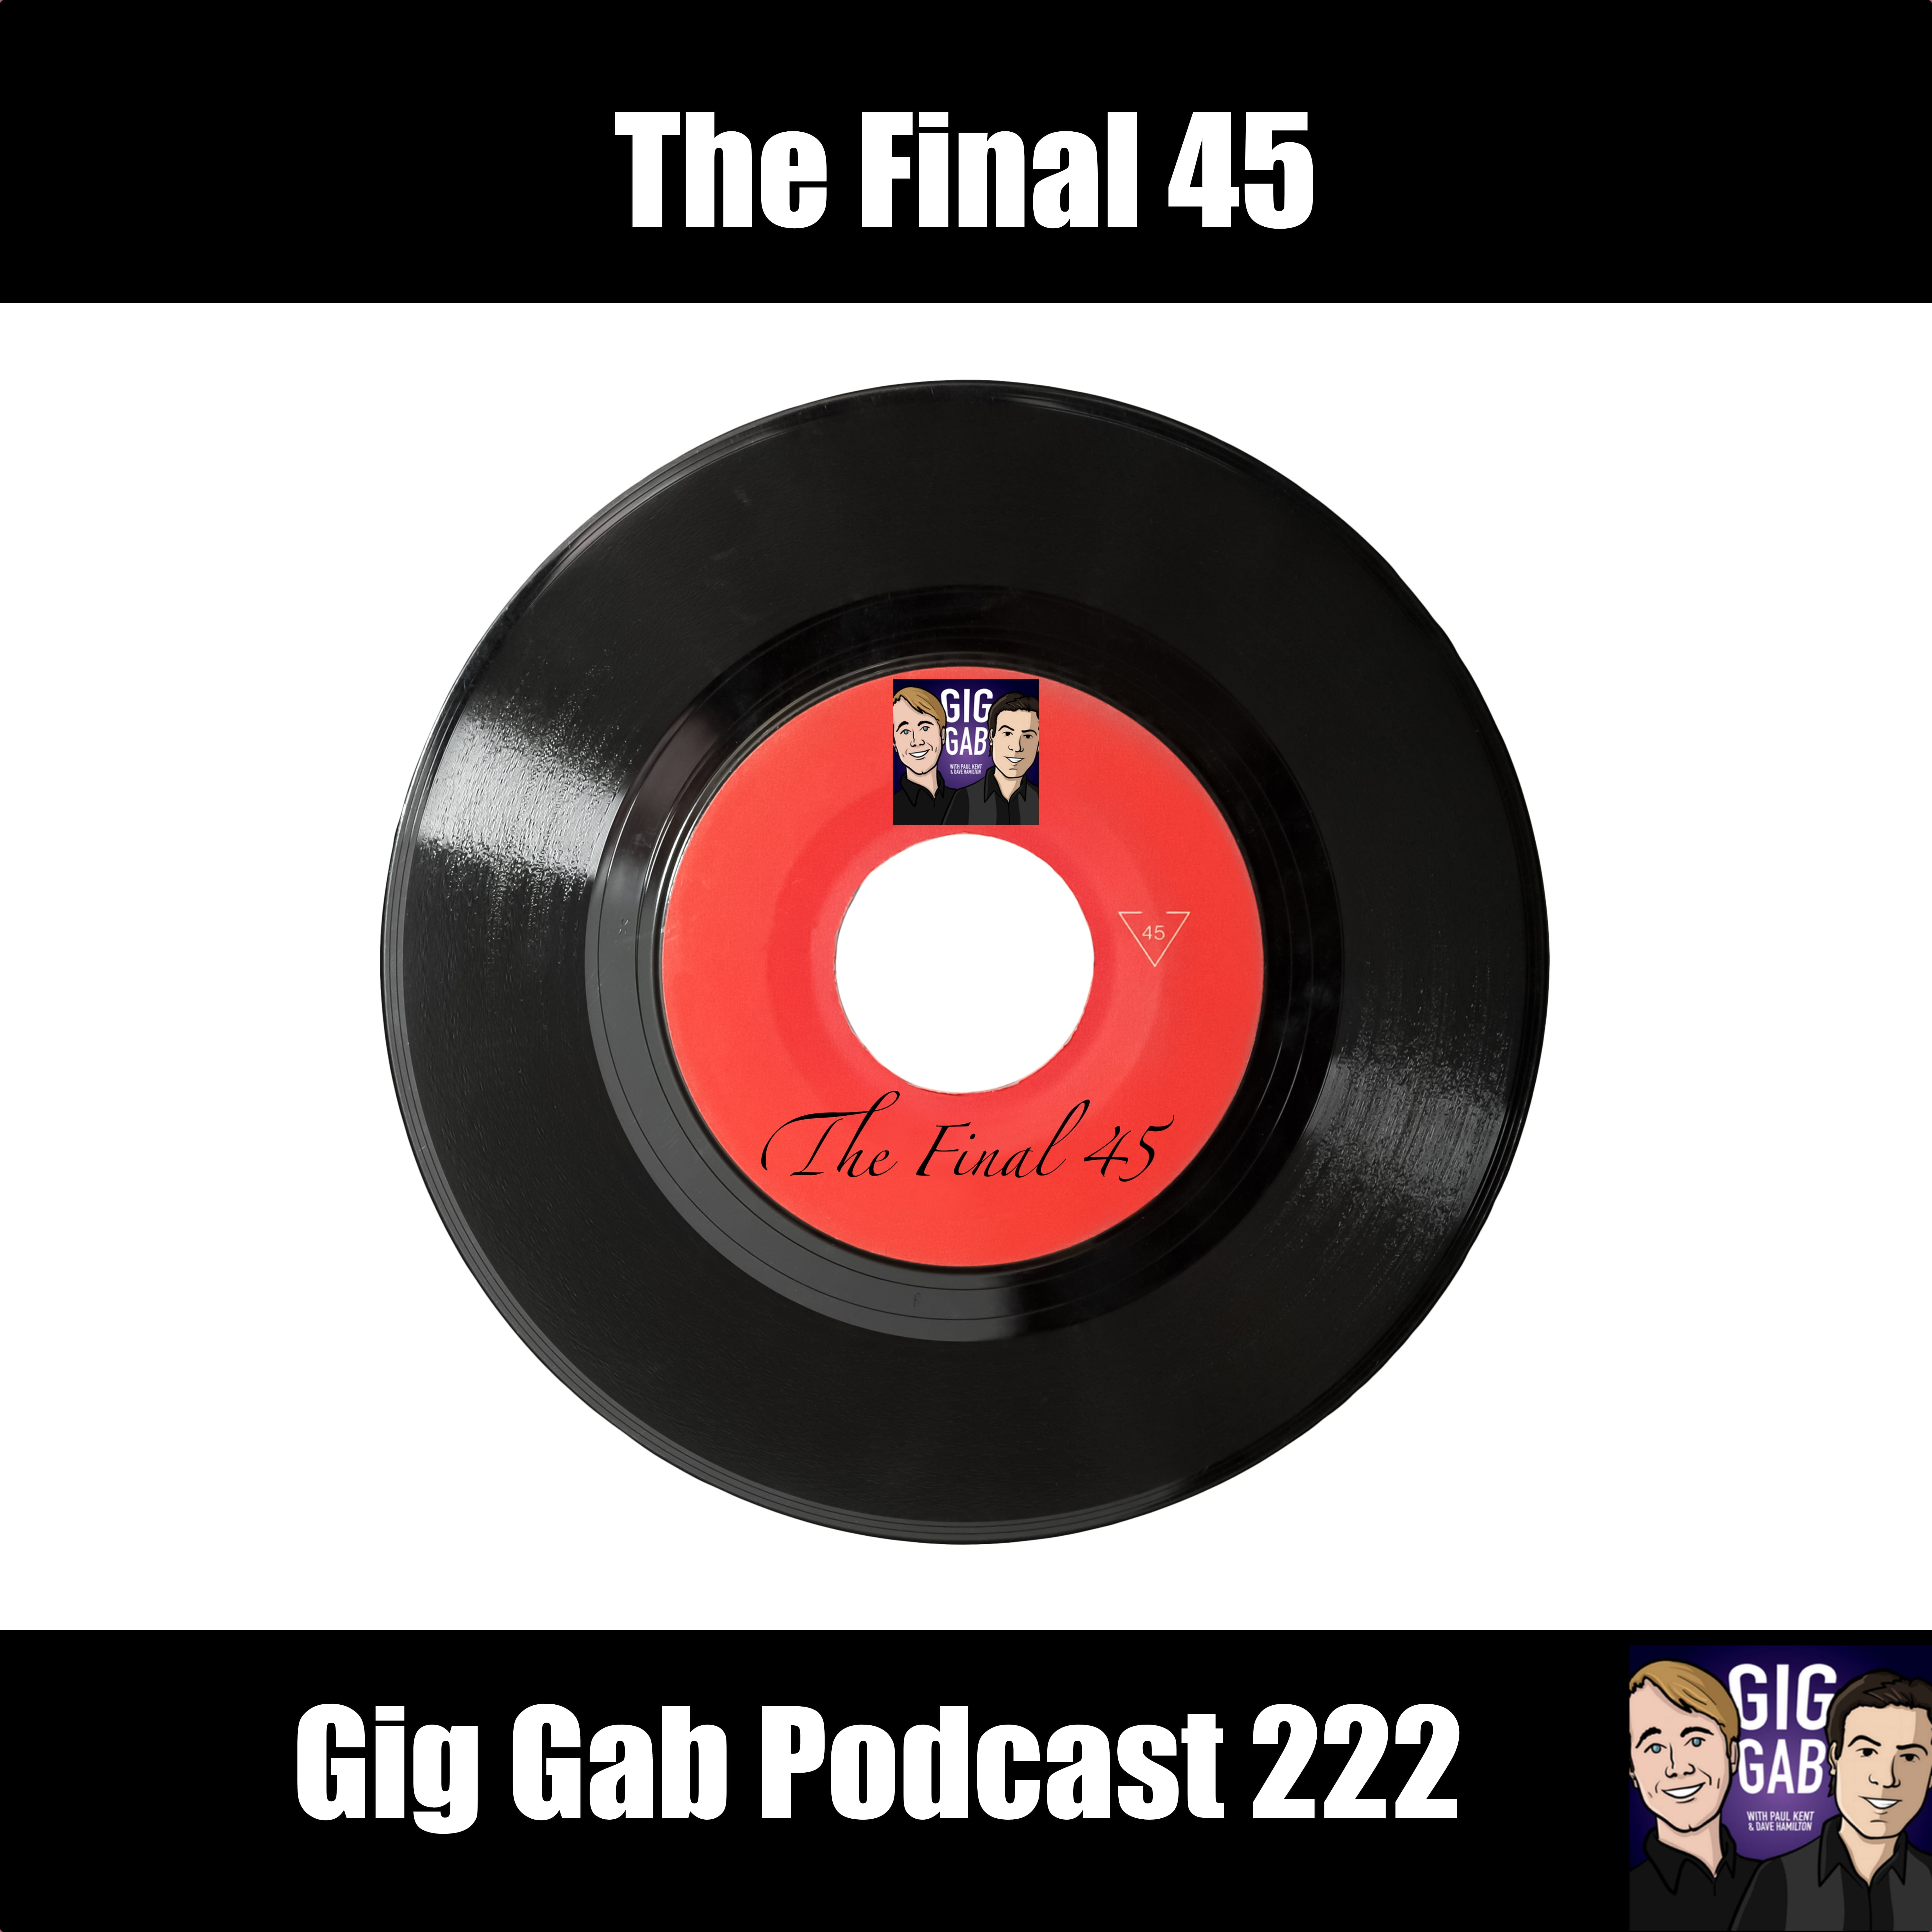 The Final 45 – Gig Gab Podcast 222